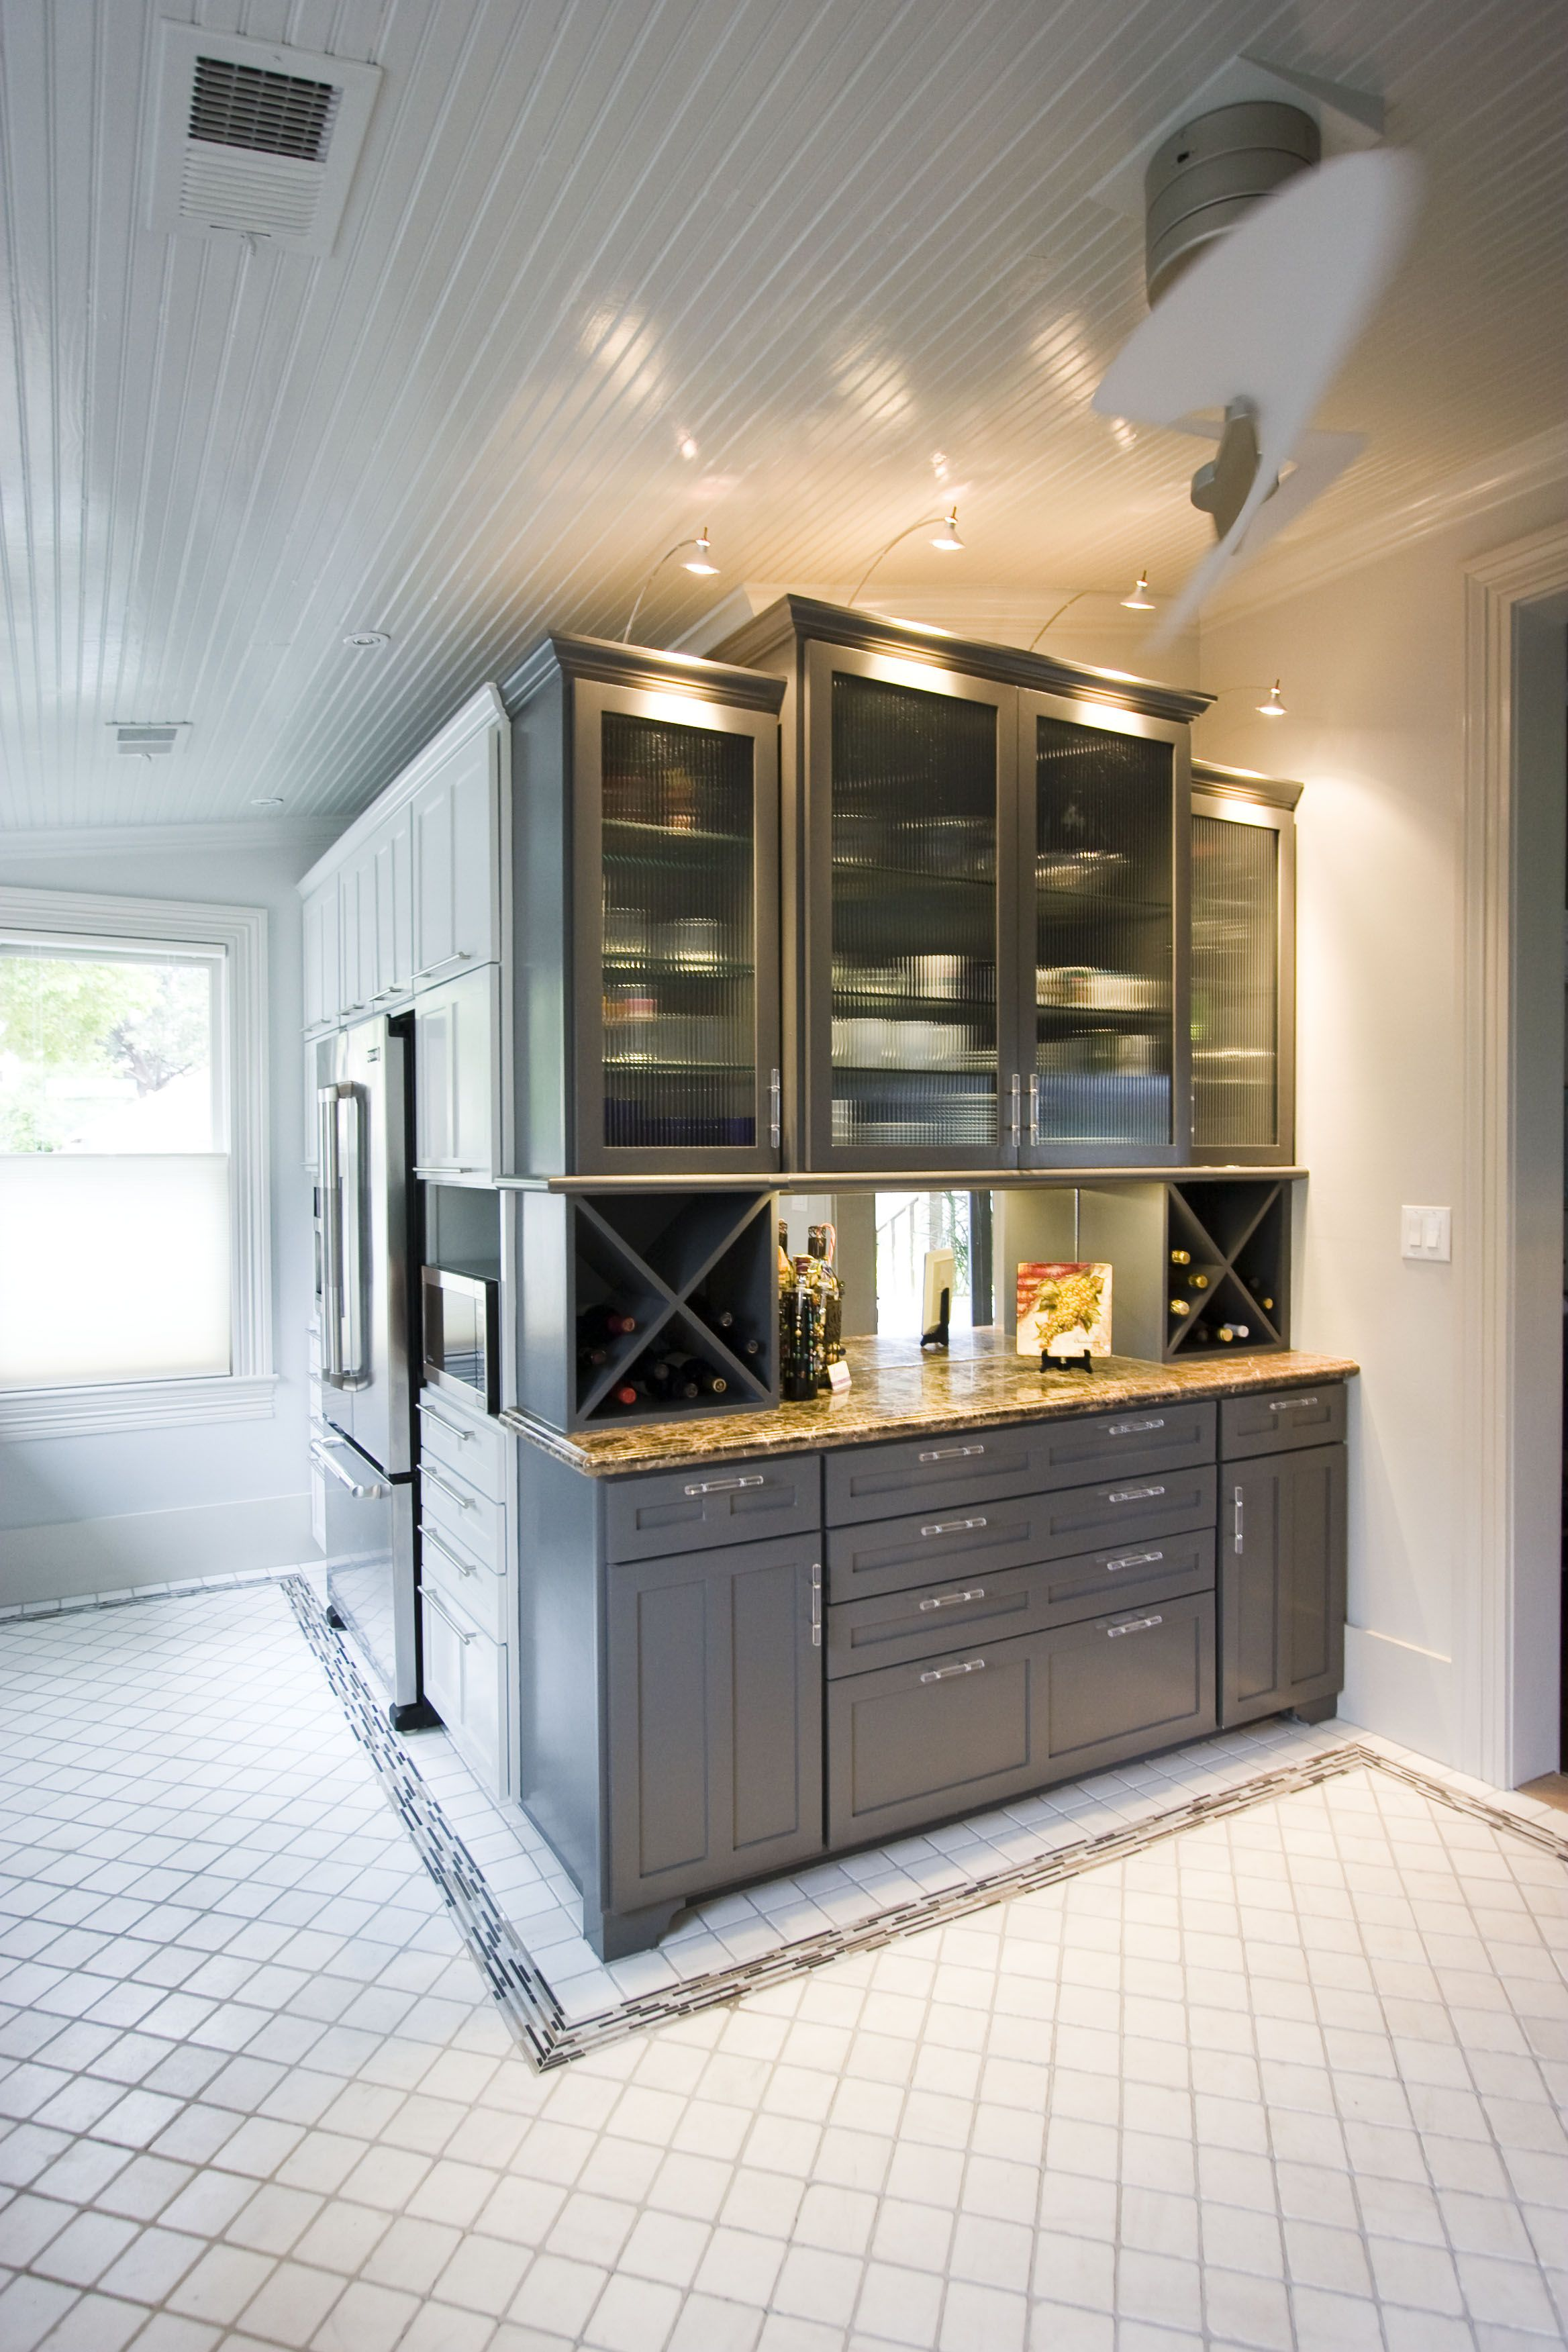 Wine bar kitchen area home inspirations pinterest for Home bar area